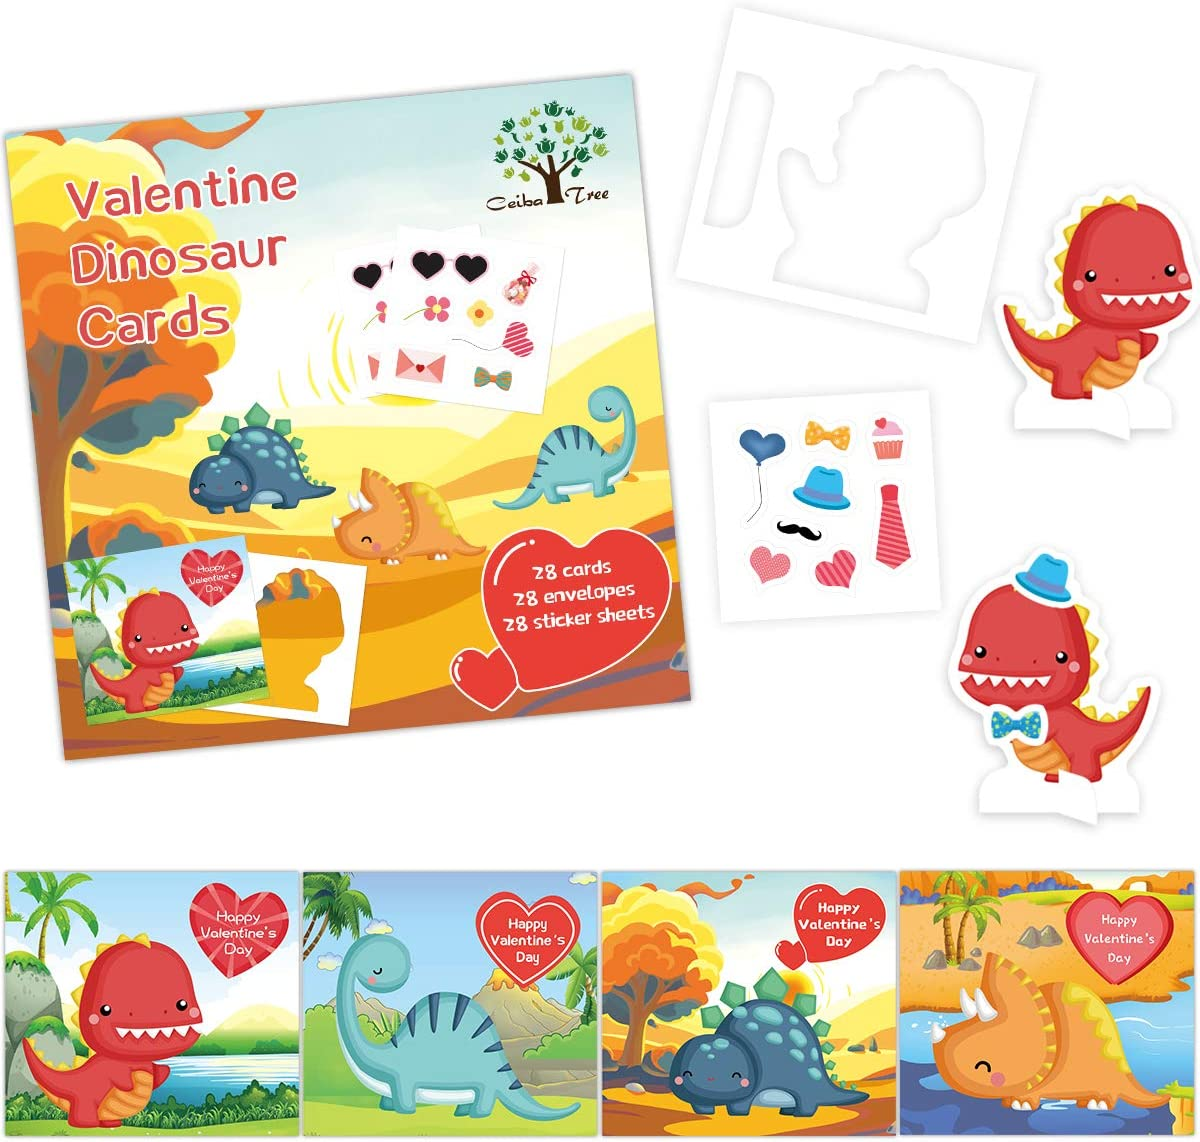 ceiba tree Valentine's Day OFFicial store Cards Stickers Pack Overseas parallel import regular item and 28 with